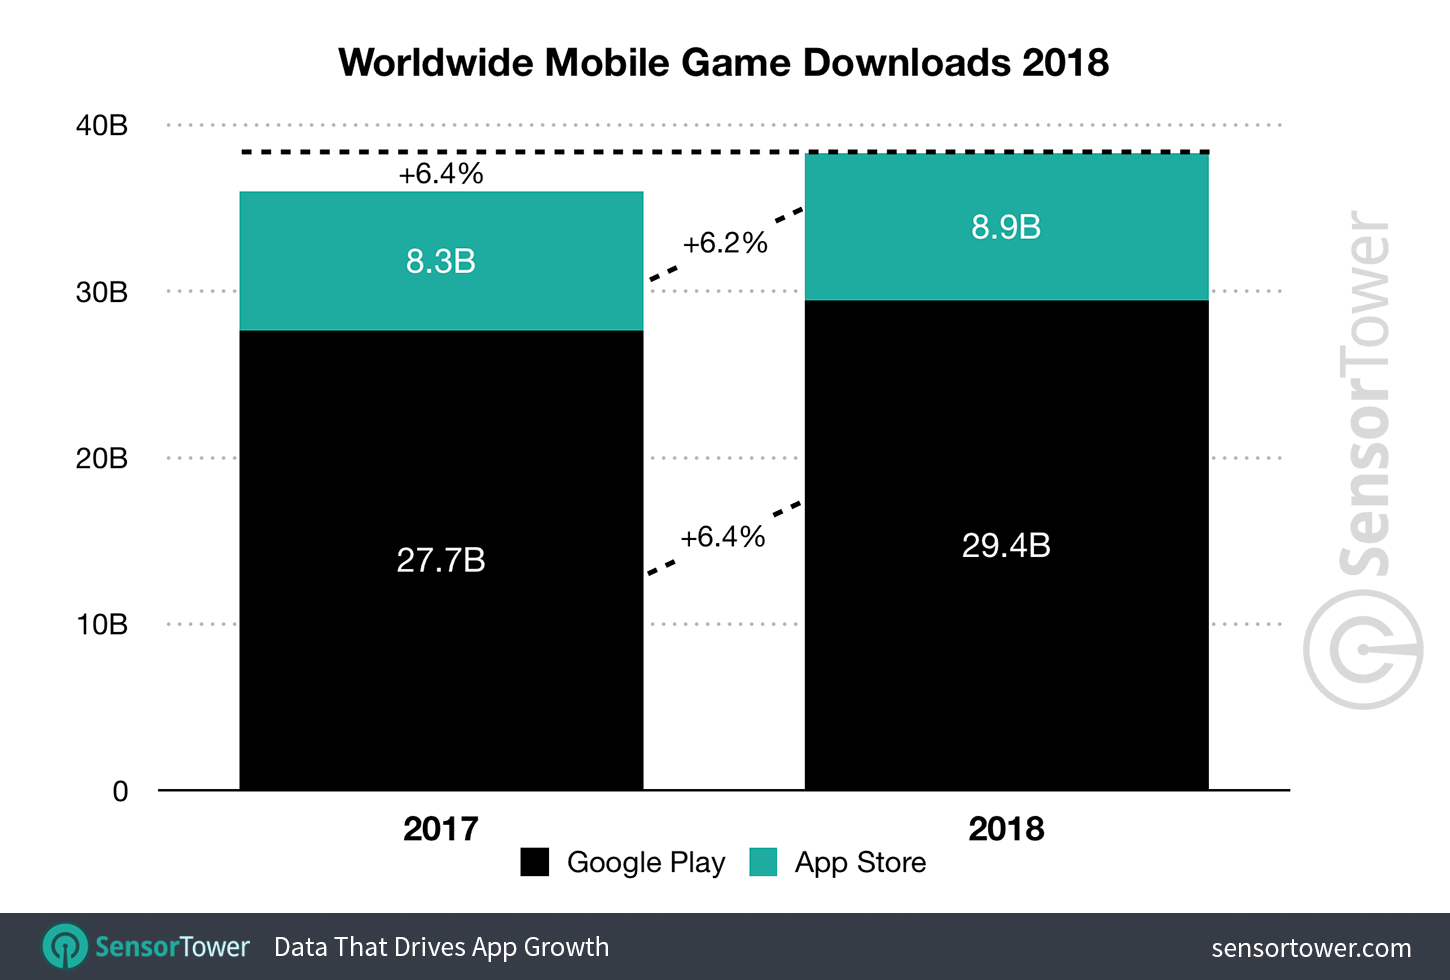 Global App Revenue Grew 23% in 2018 to More Than $71 Billion